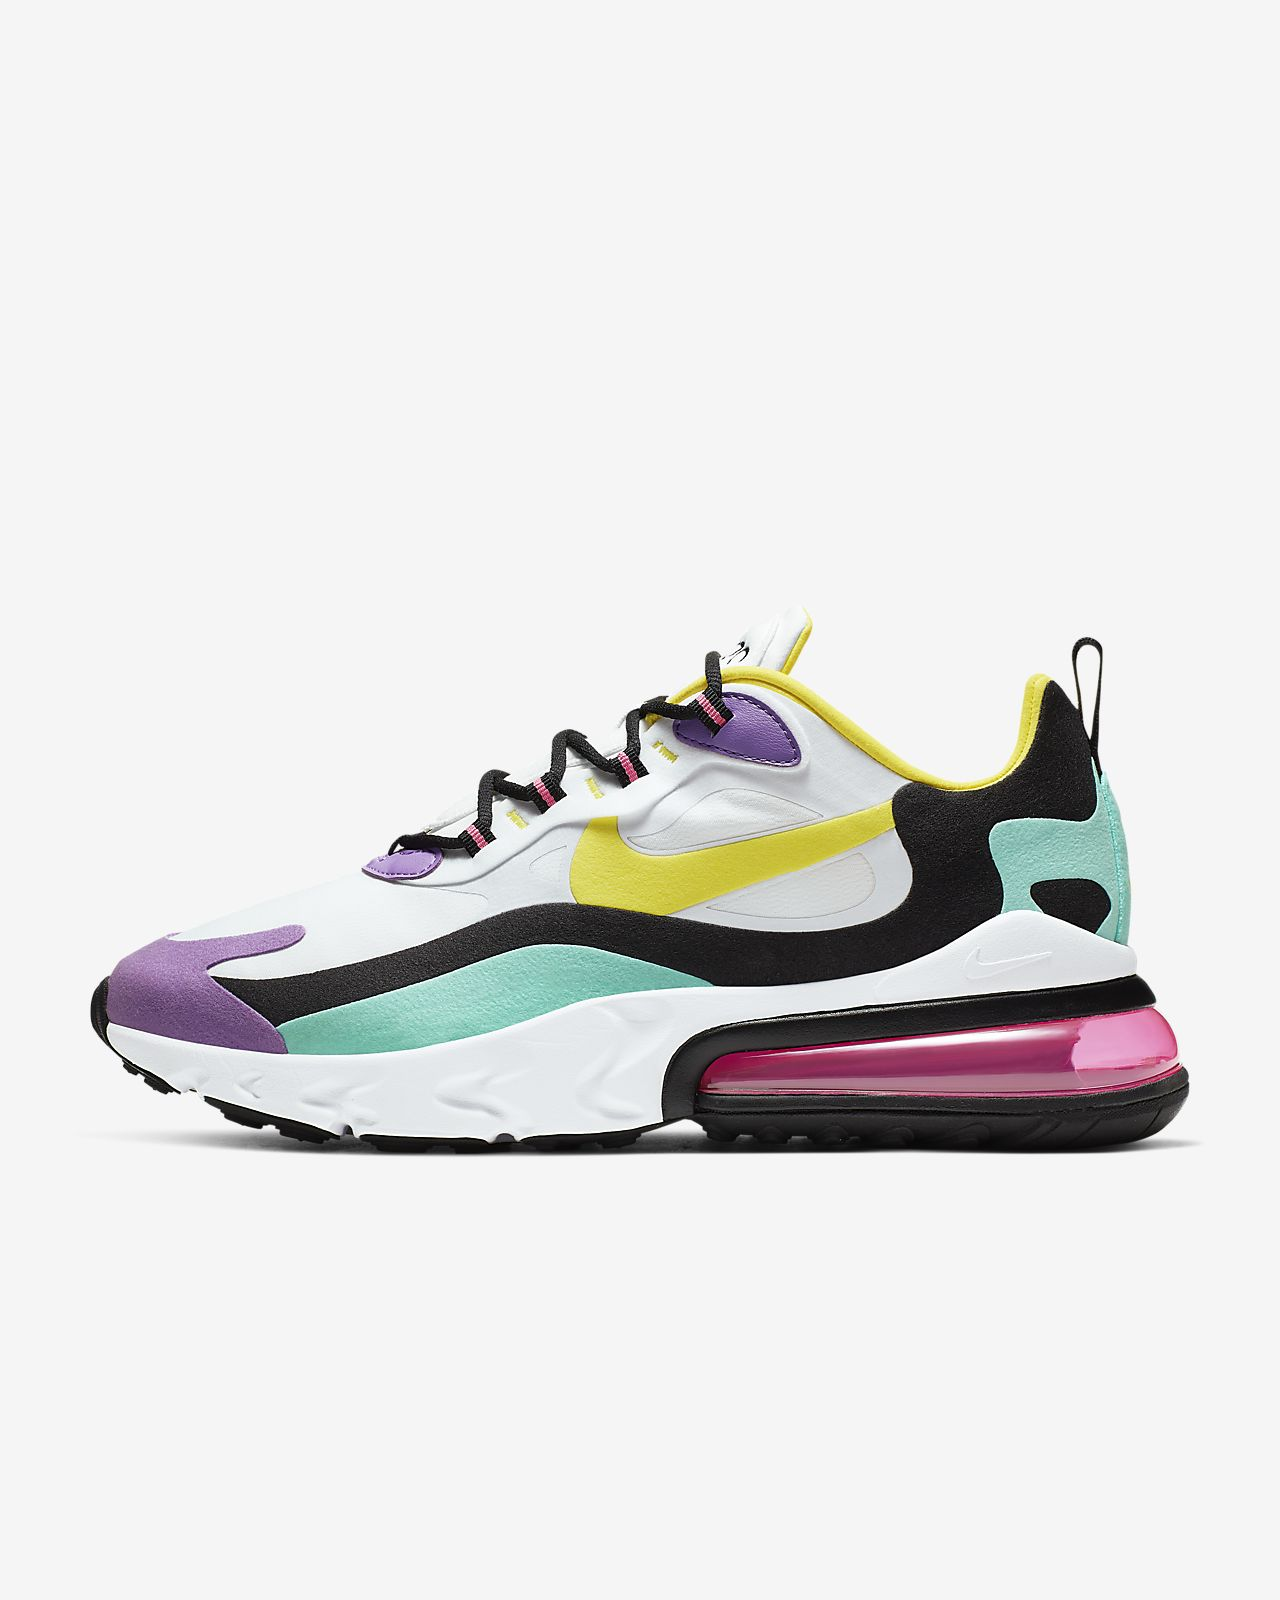 super specials picked up uk availability Nike Air Max 270 React (Geometric Abstract) Men's Shoe. Nike LU